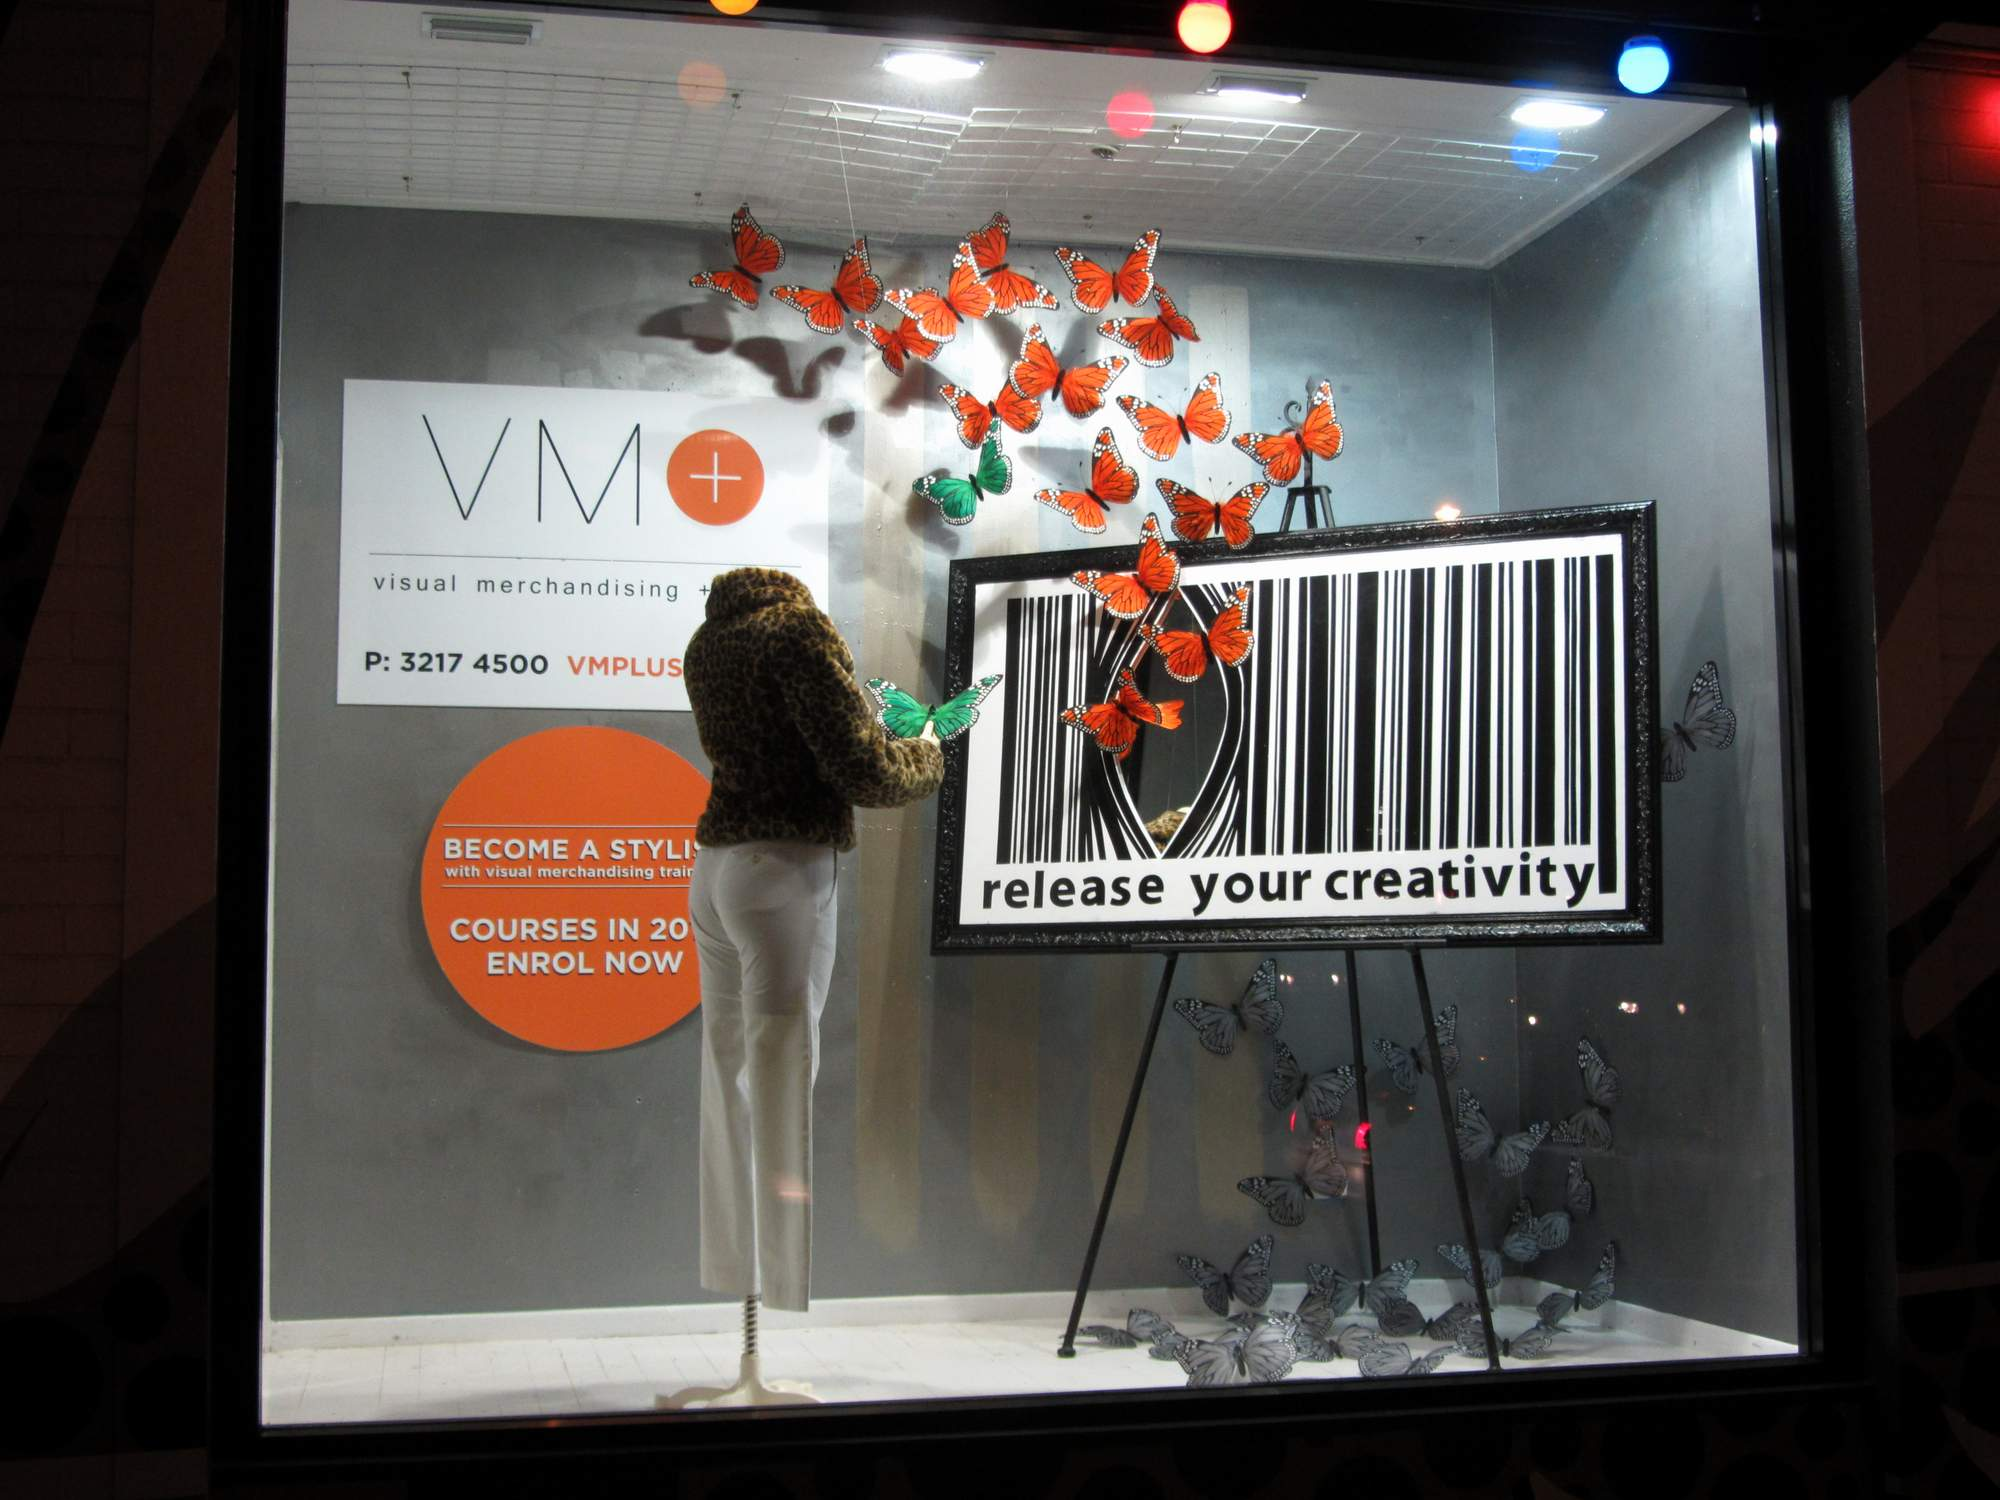 Release your creativity : window display by VM+ graduate Wendy July 2012